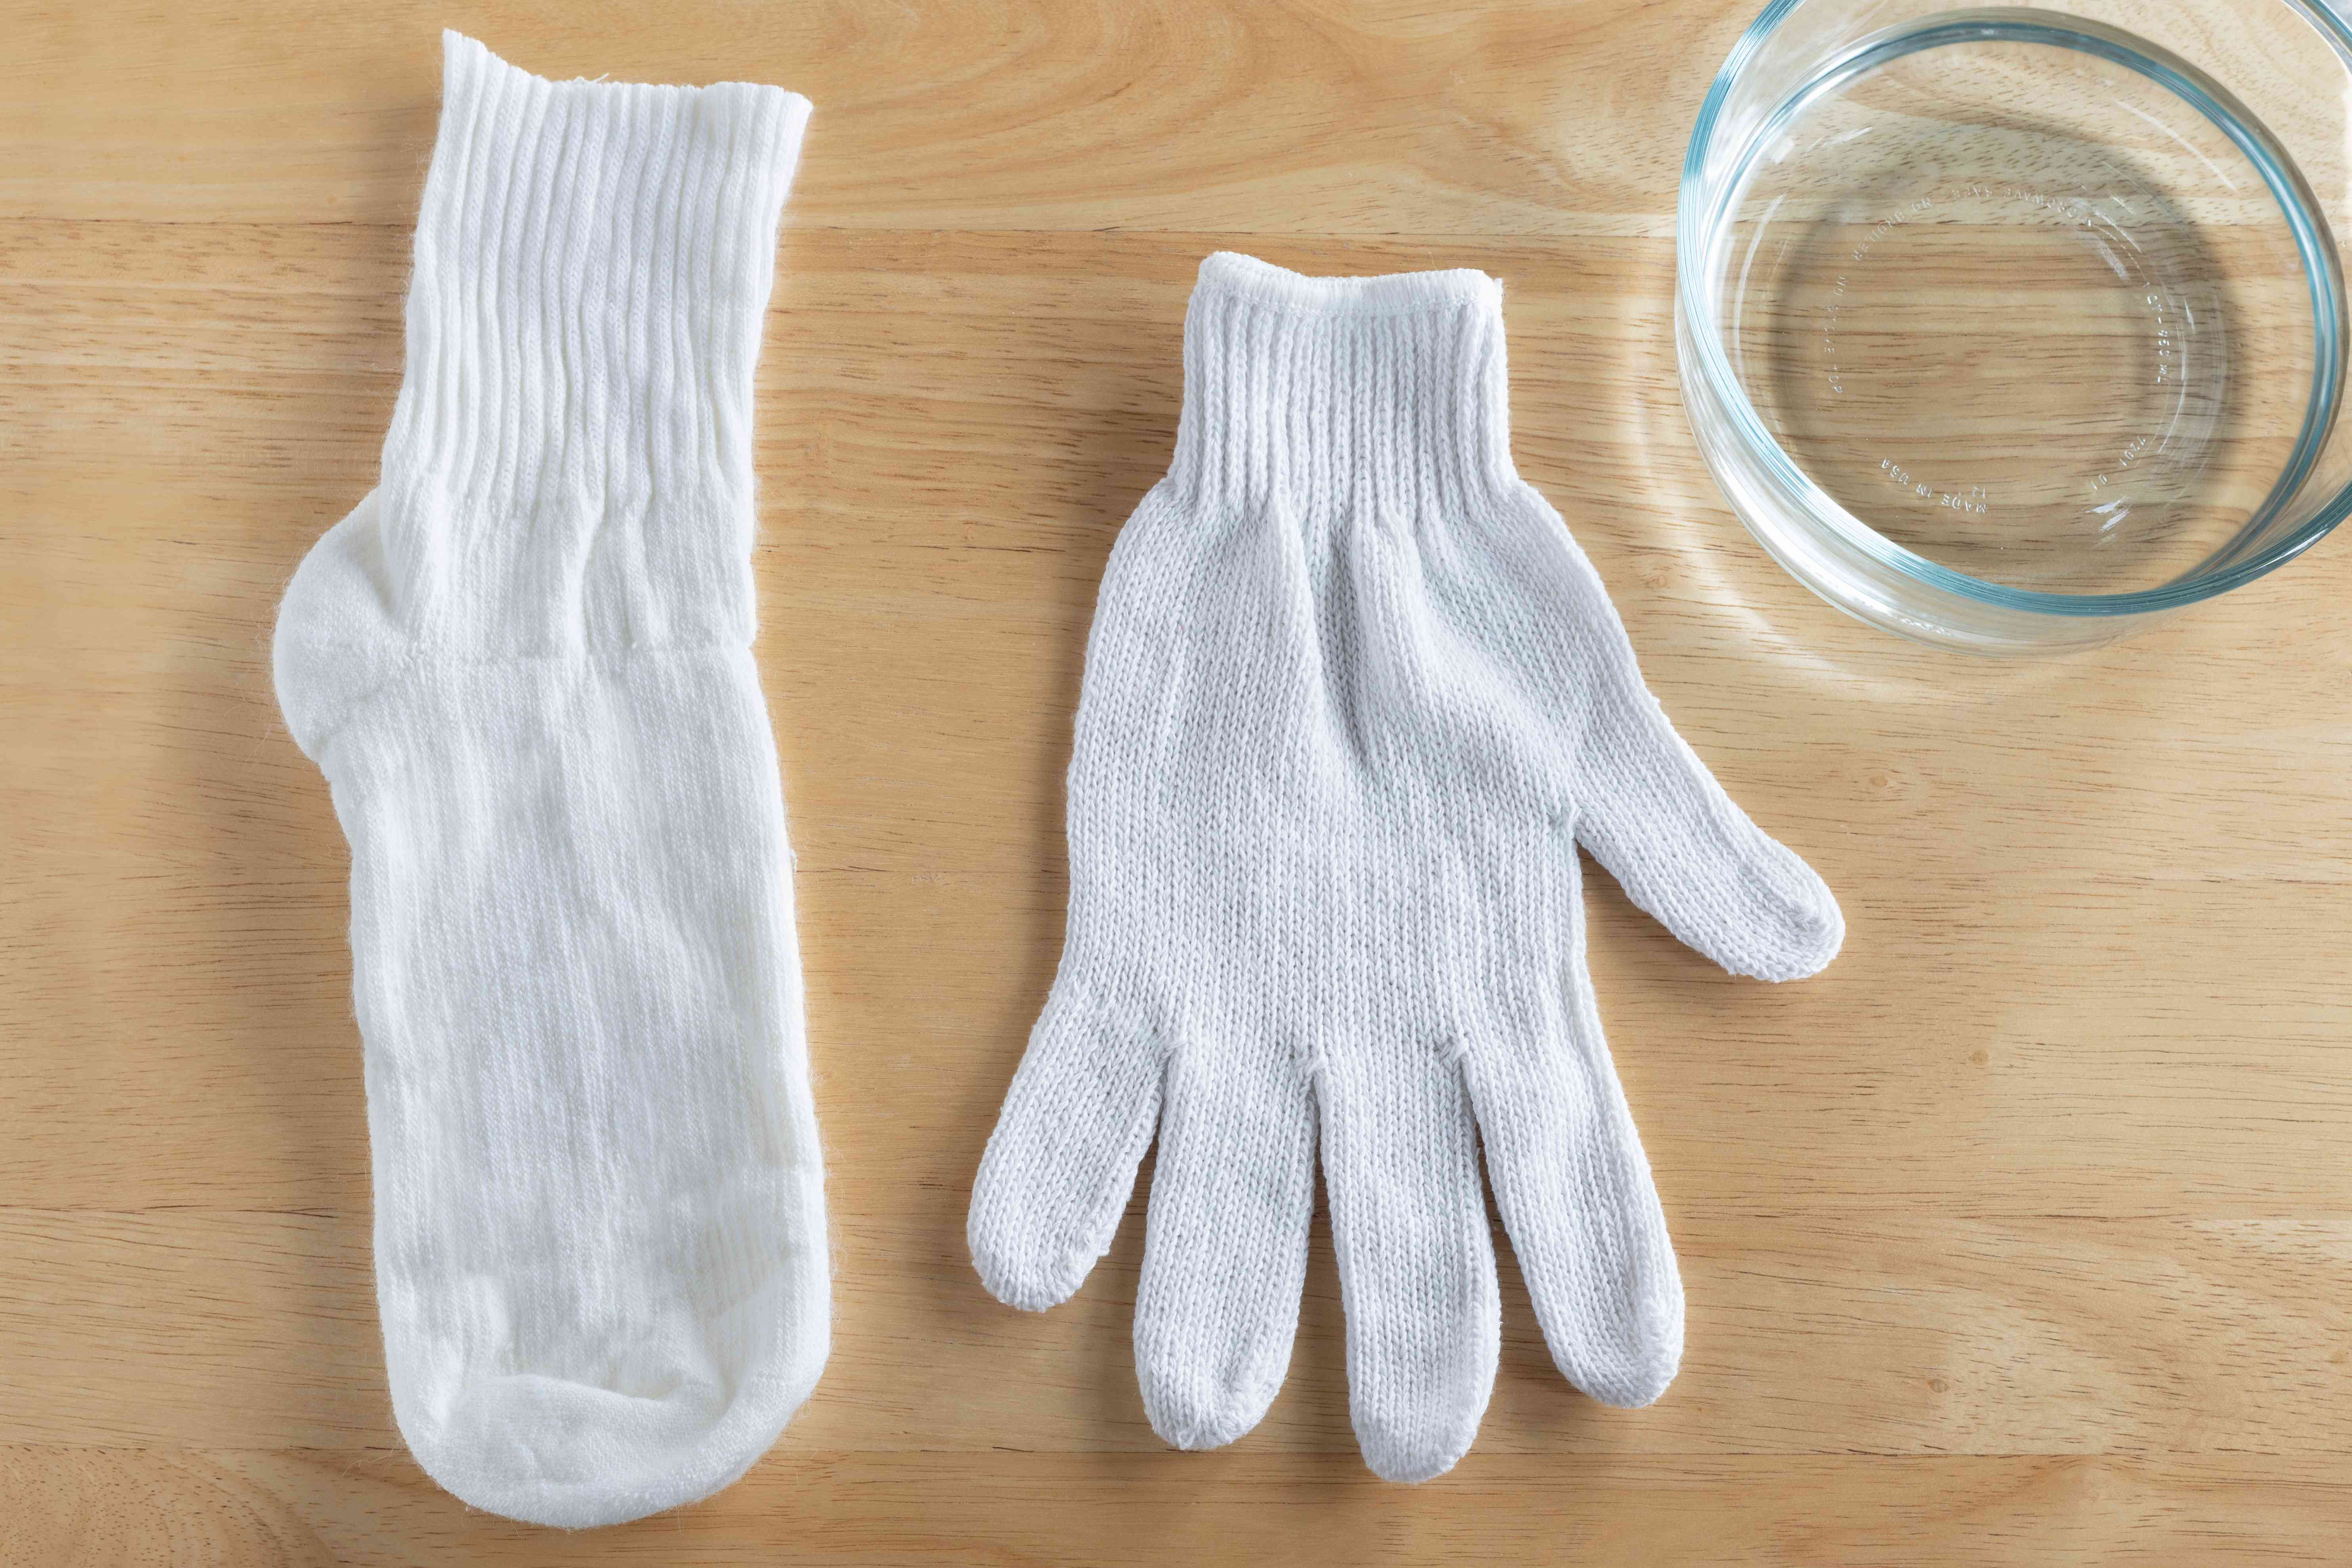 Old glove and white socks next to glass bowl with white vinegar materials